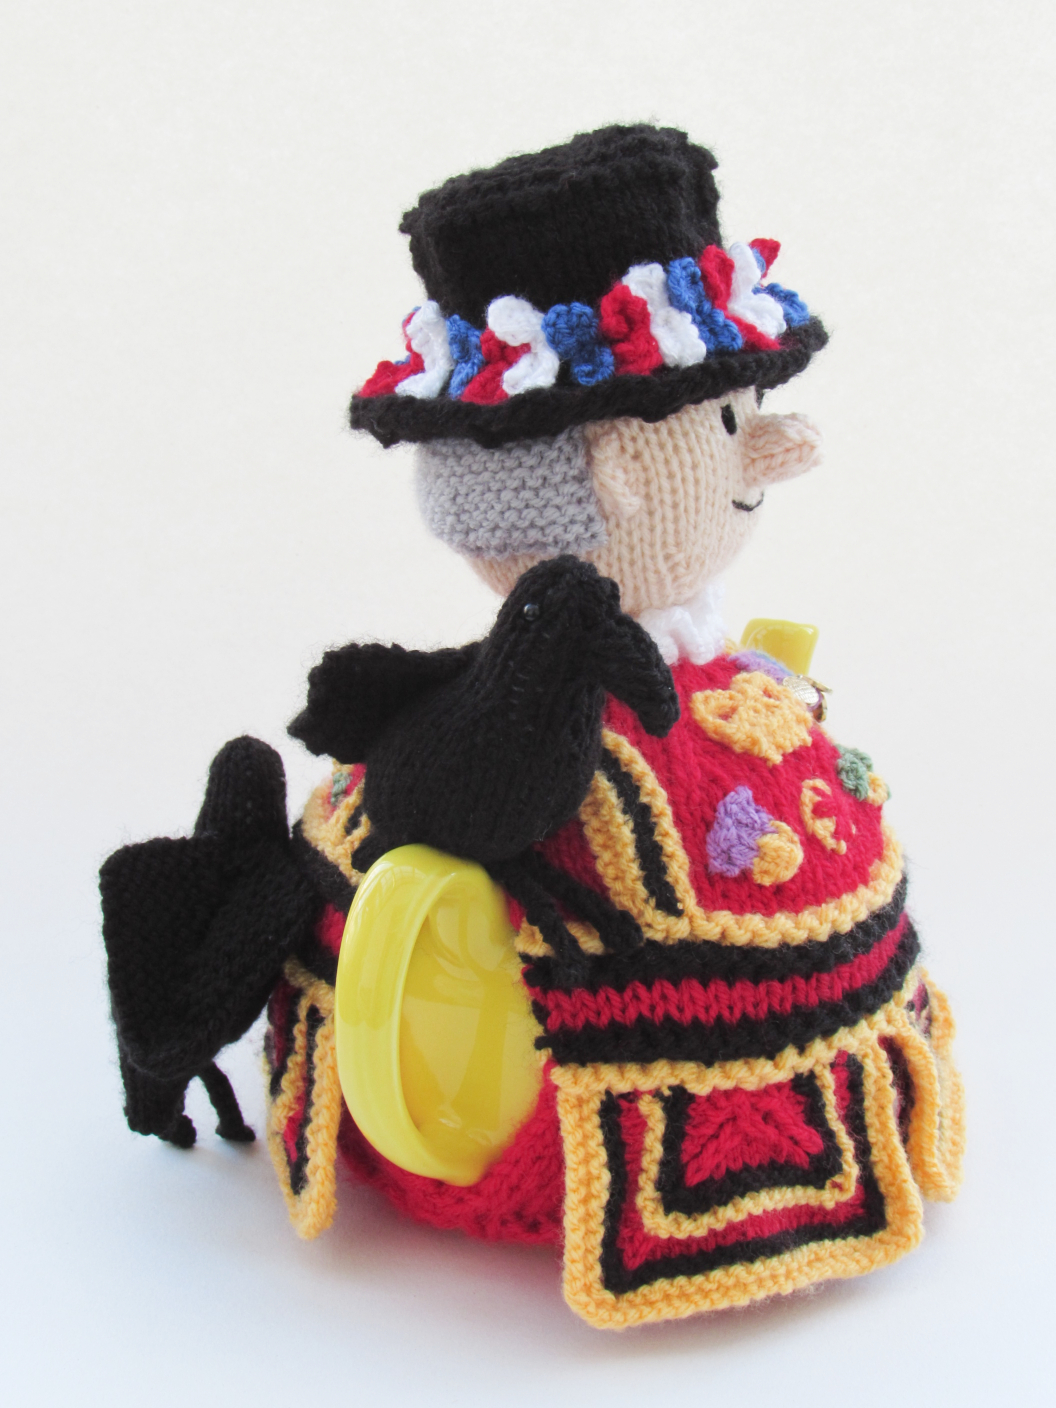 Beefeater  knitting pattern